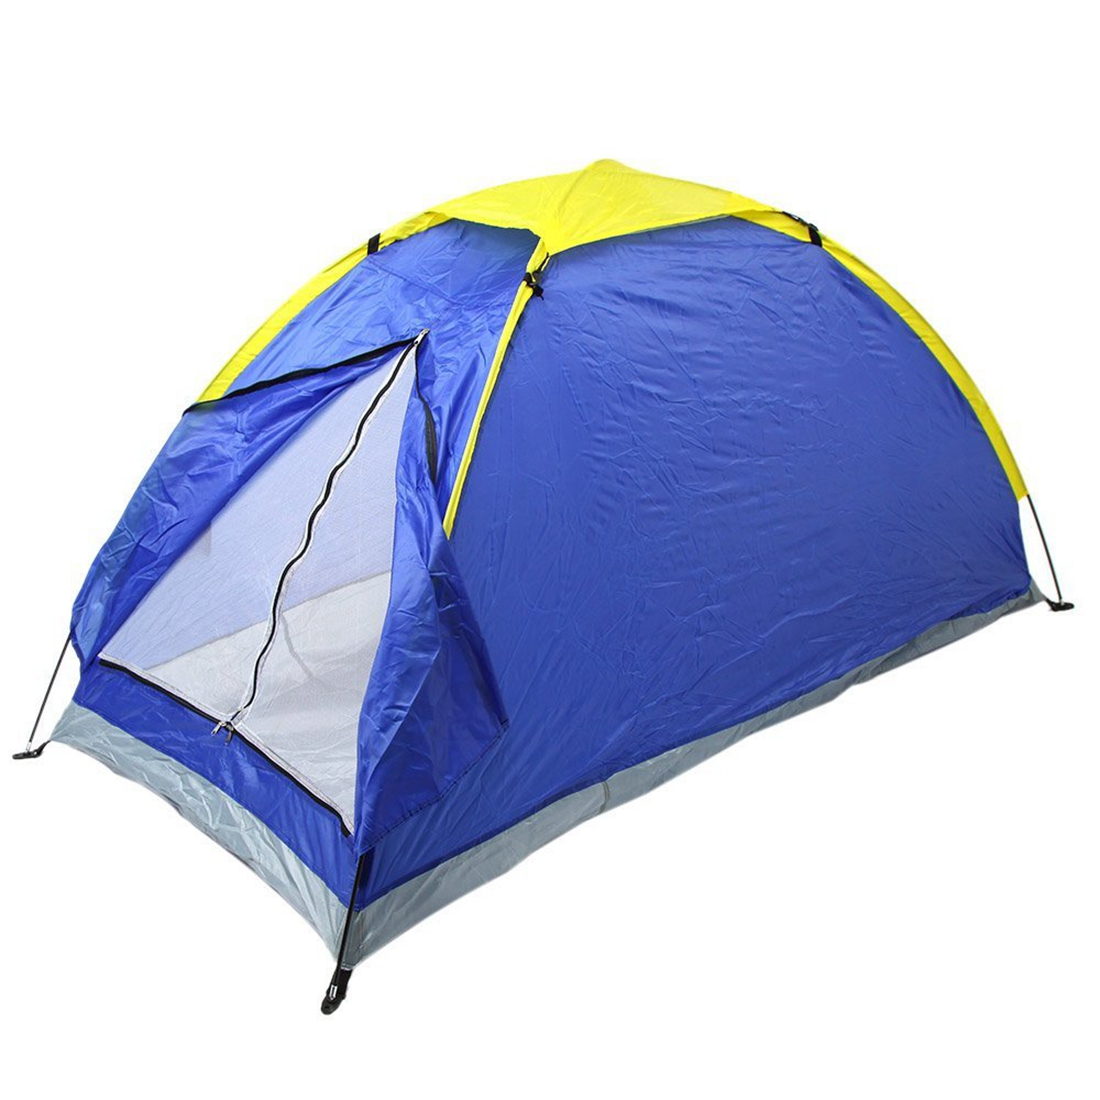 Outdoor camping tent single People camping tent Blue design beach tent pop up open 1 2person